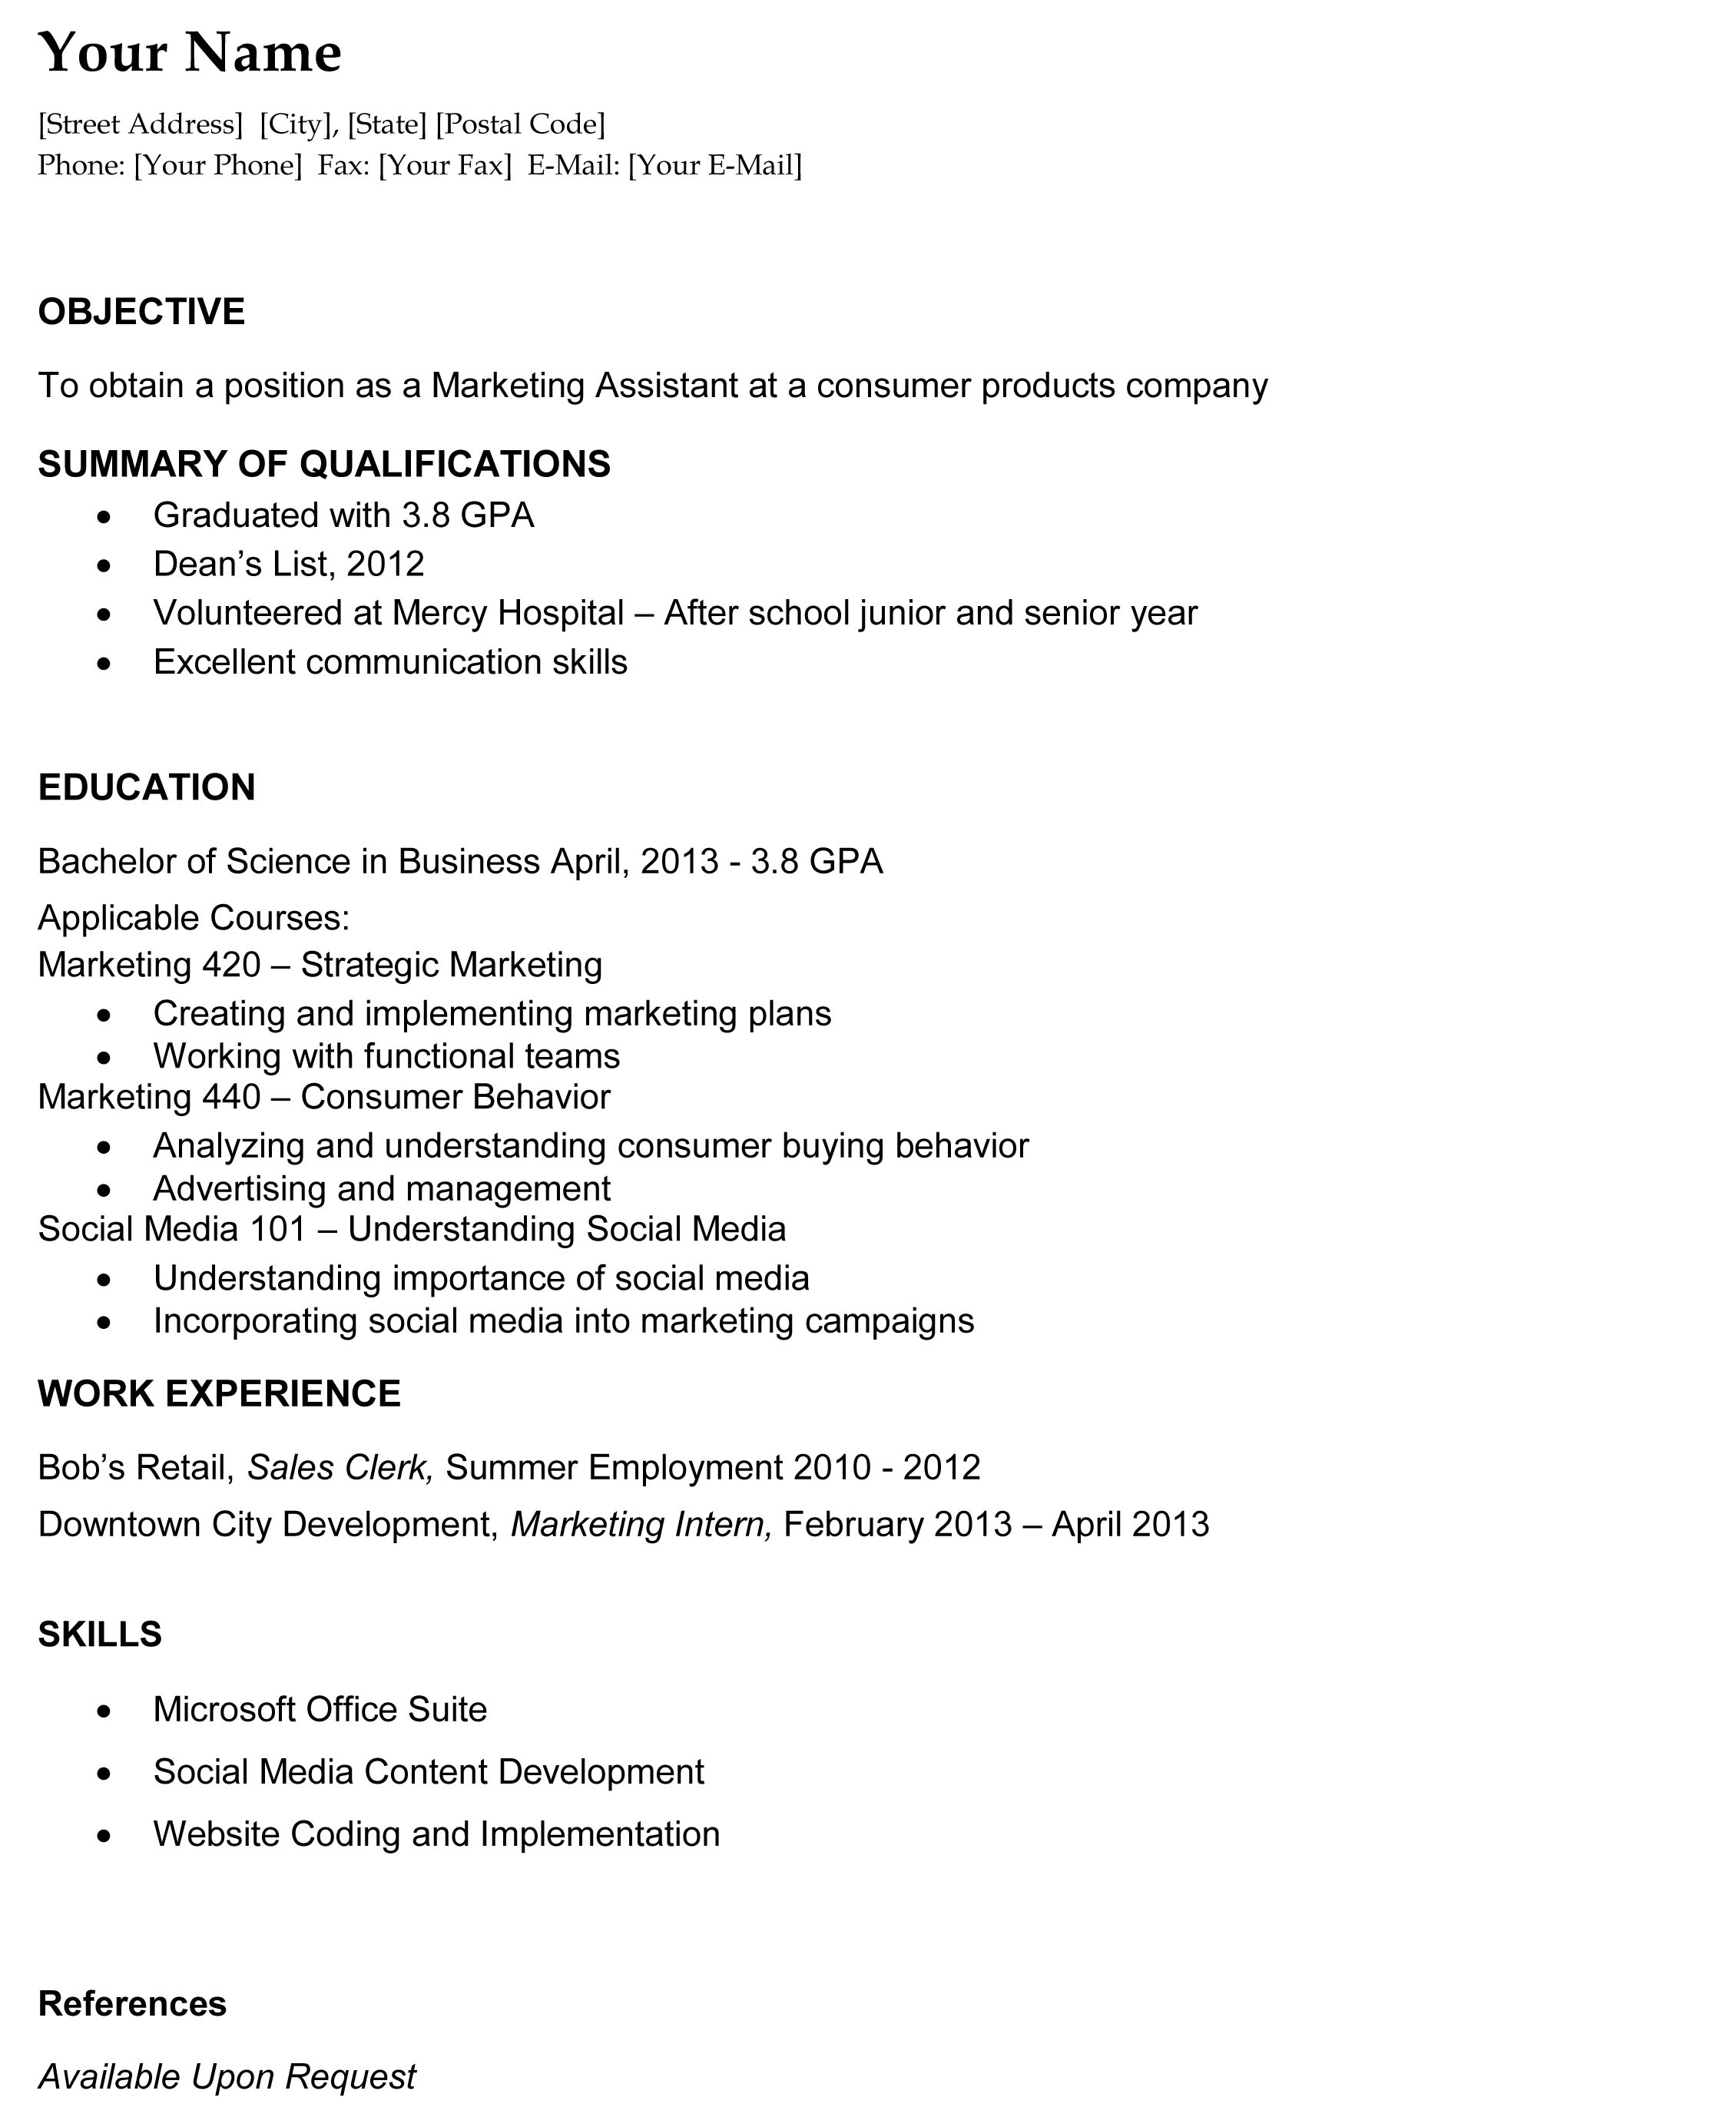 Recent College Graduate Resume The Template Site